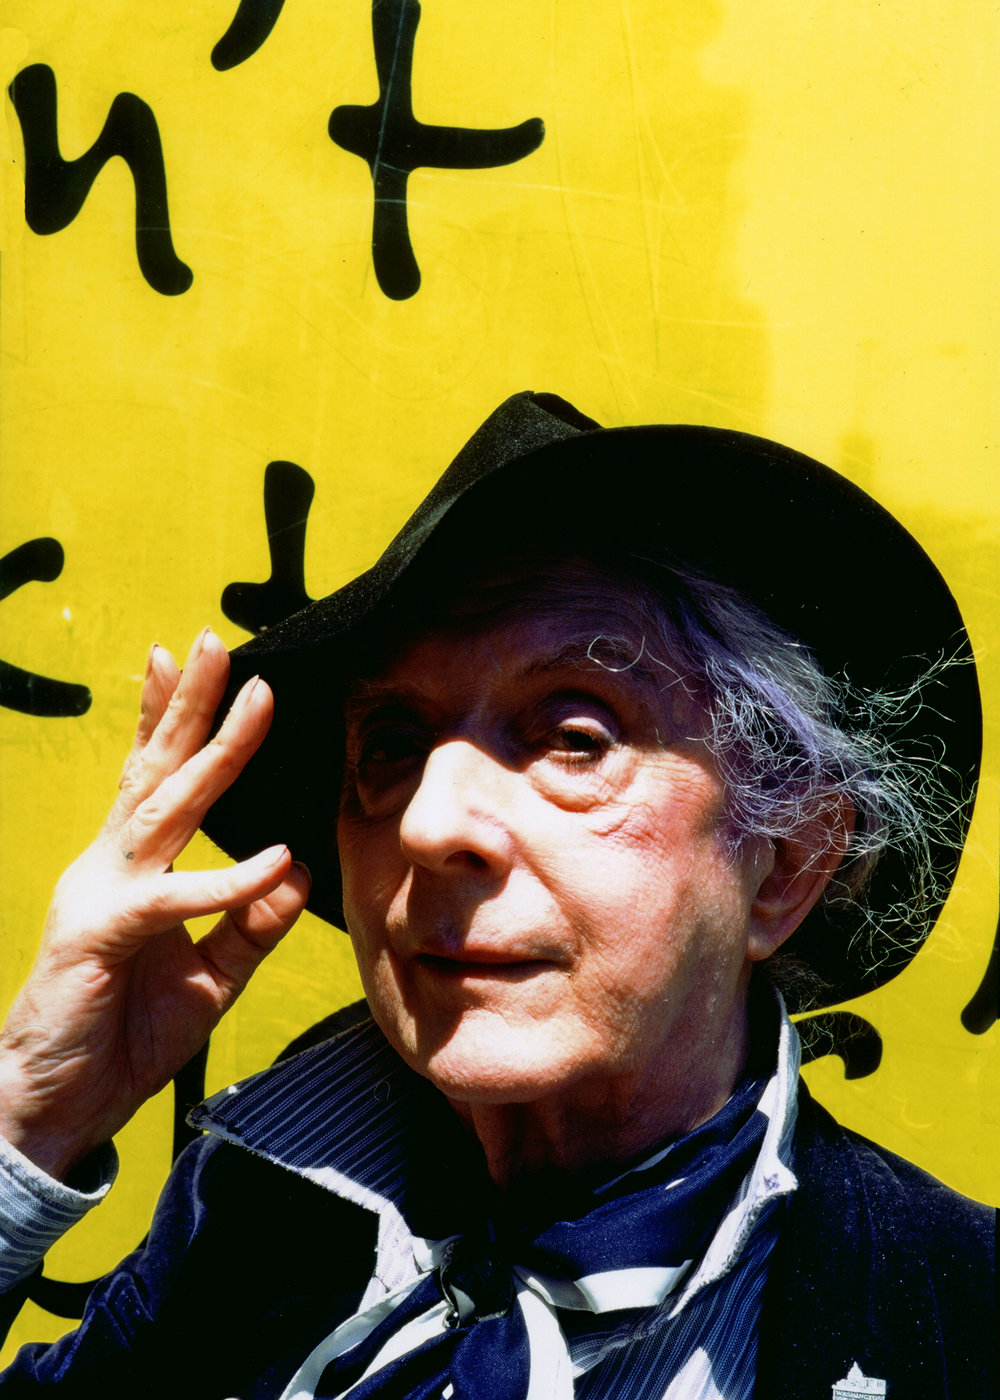 QUENTIN CRISP, LEGEND, NEW YORK 1995